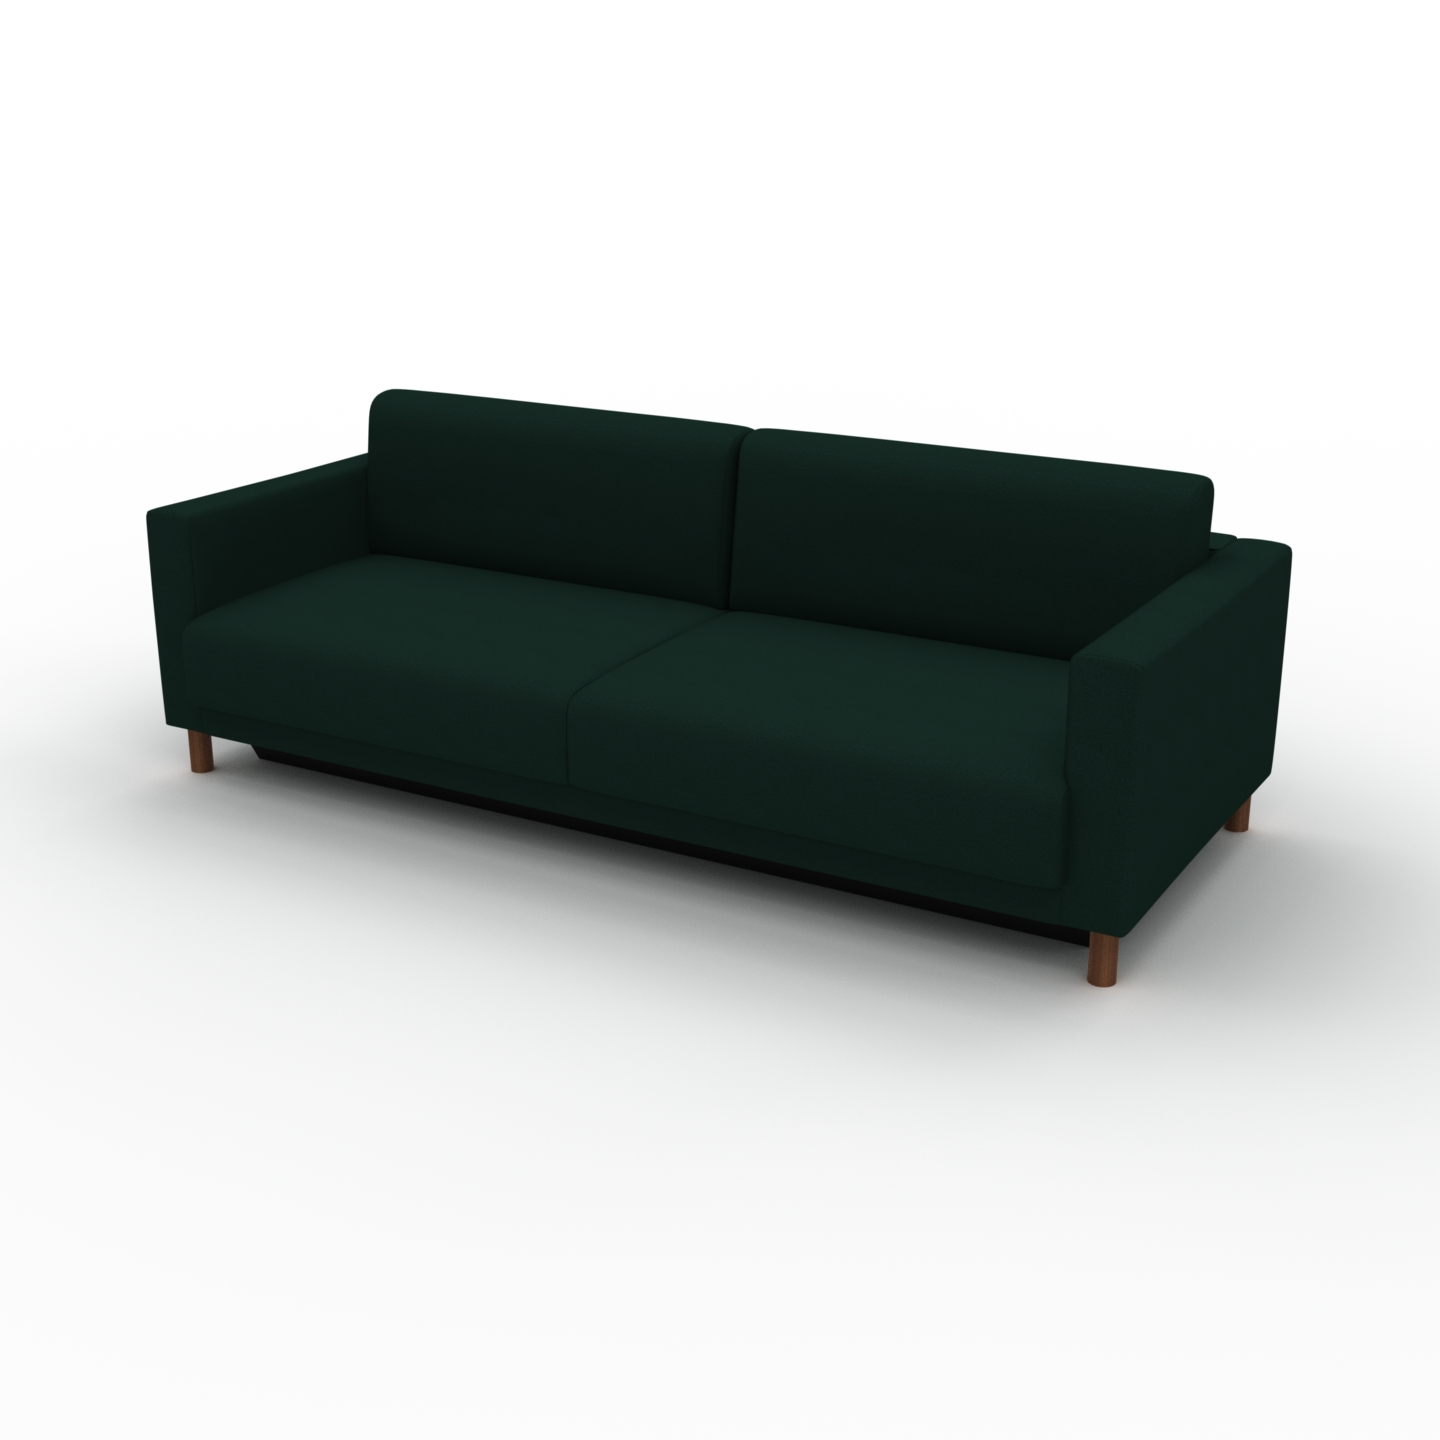 Full Size of Lounge Sofa Lange Kussens Tisch Langes Kaufen Production Sofabord Leder Sofakissen Lang Sofaborde 3 Sitzer Schlafsofa Schlafcouch Grn Couch Wohnzimmer Tyme Sofa Langes Sofa